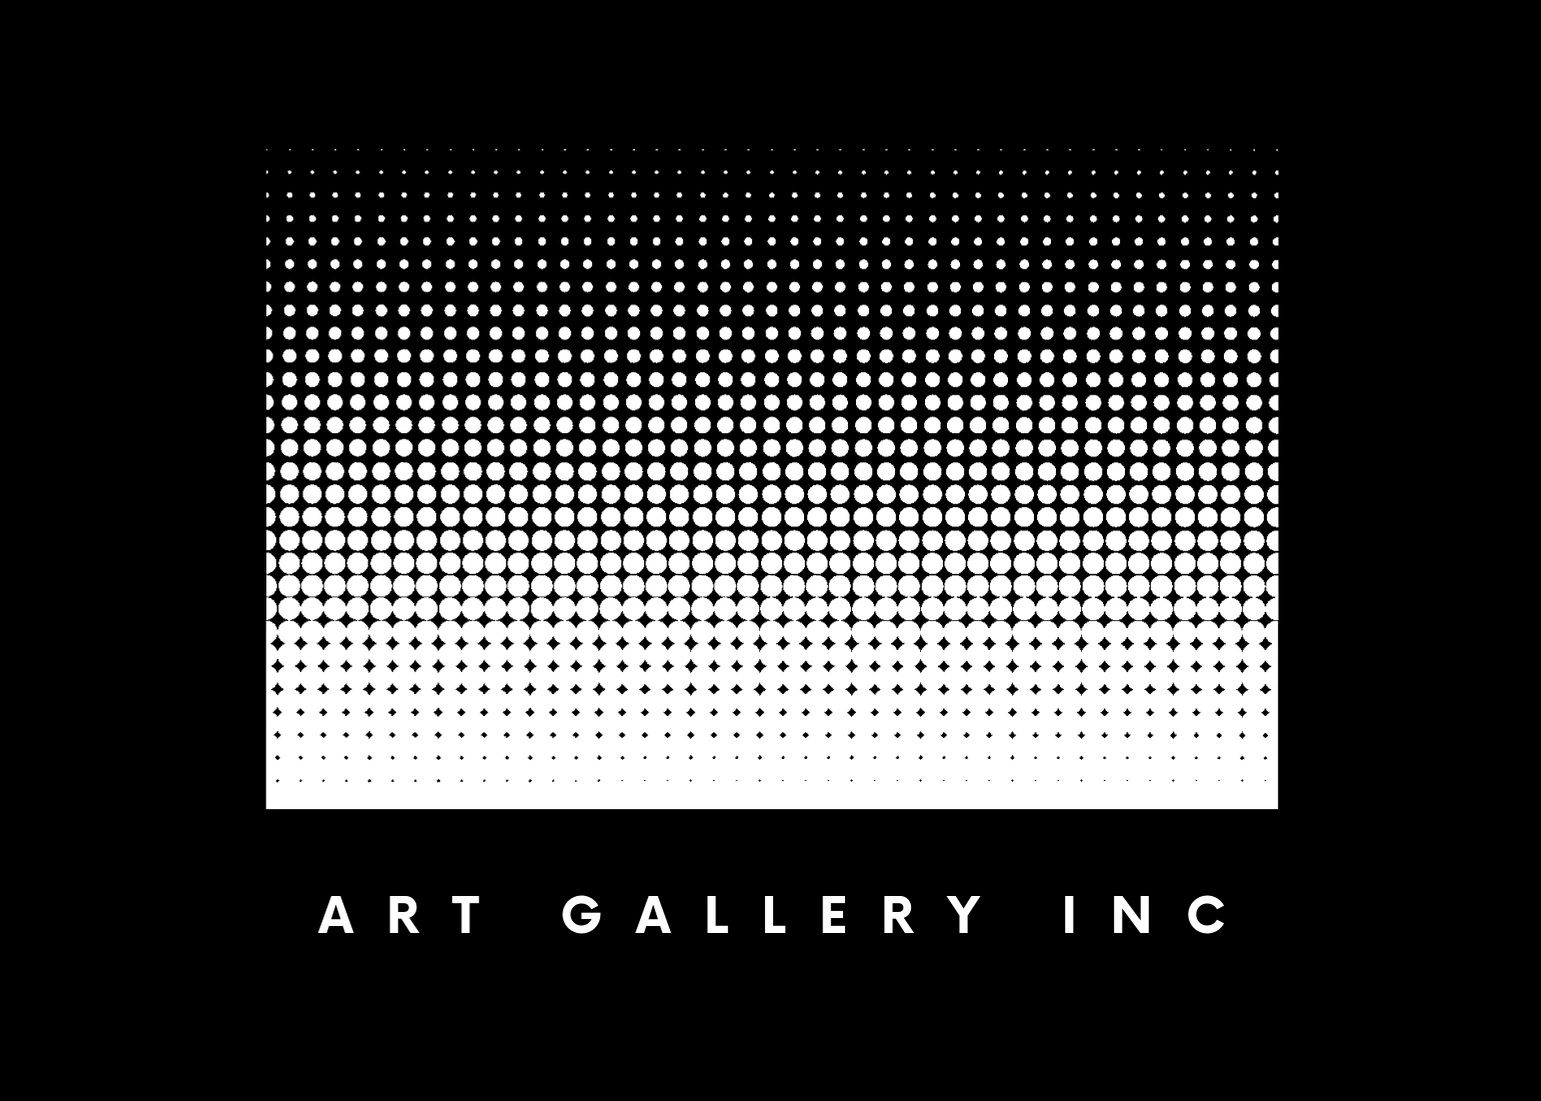 Art Gallery Inc